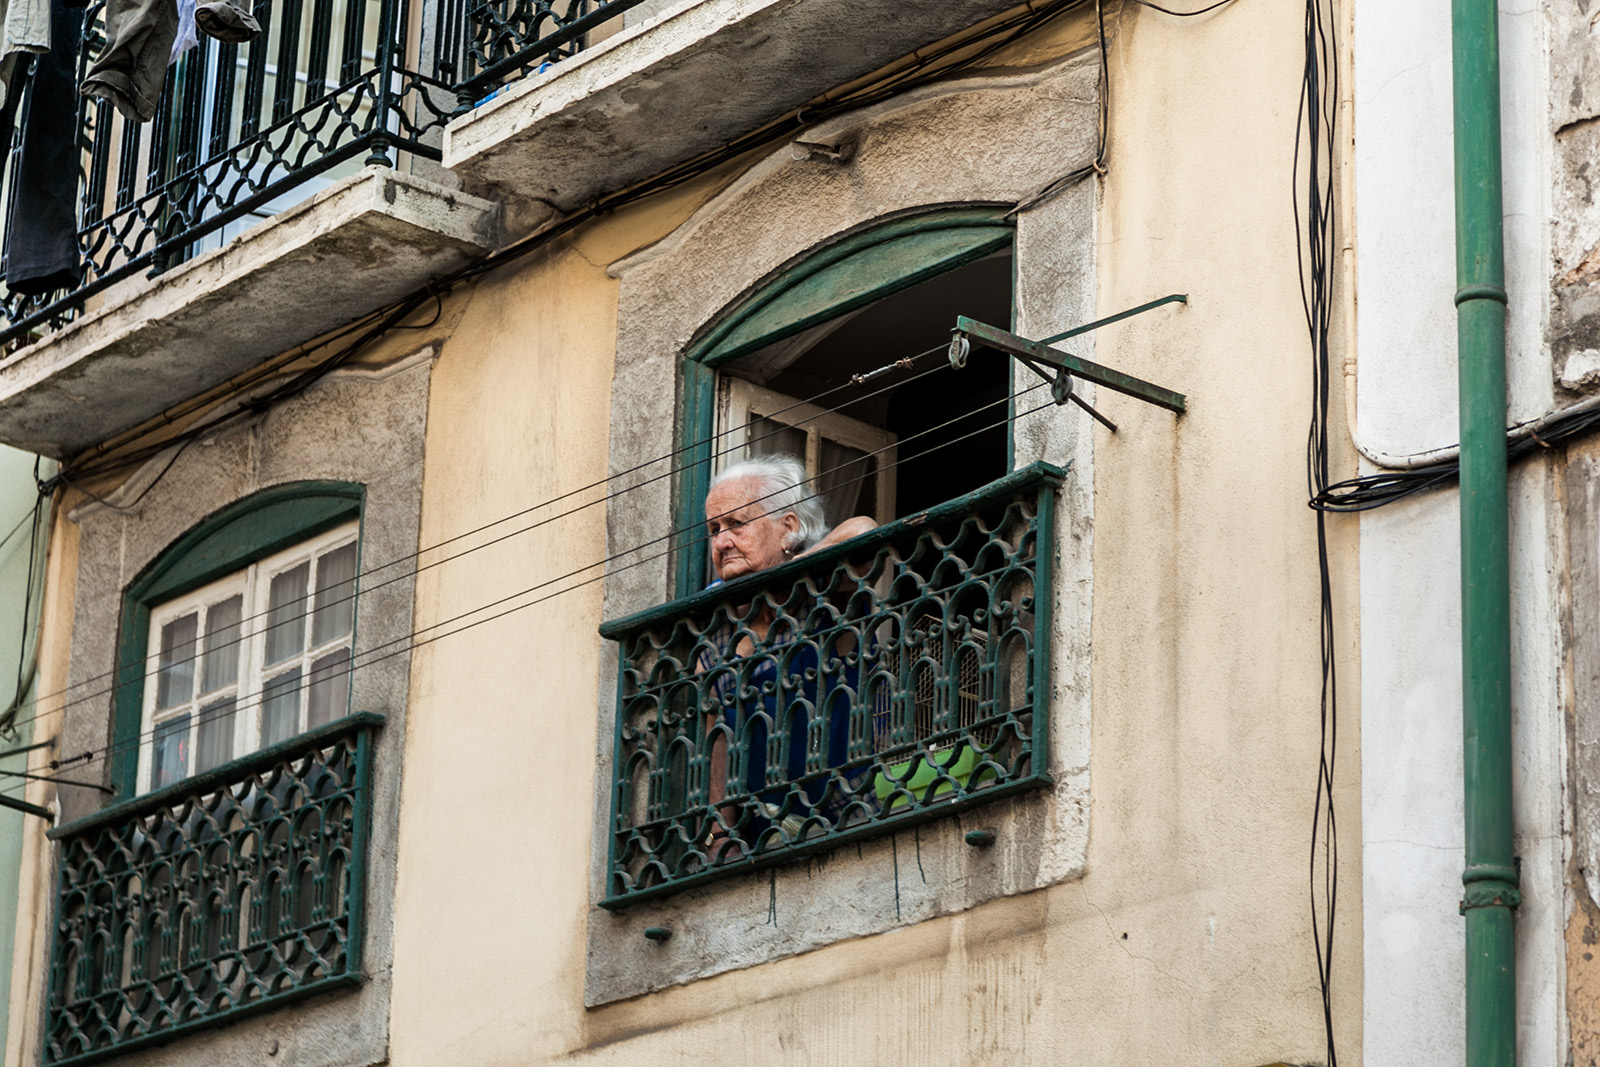 Overlooking the street. An old lady